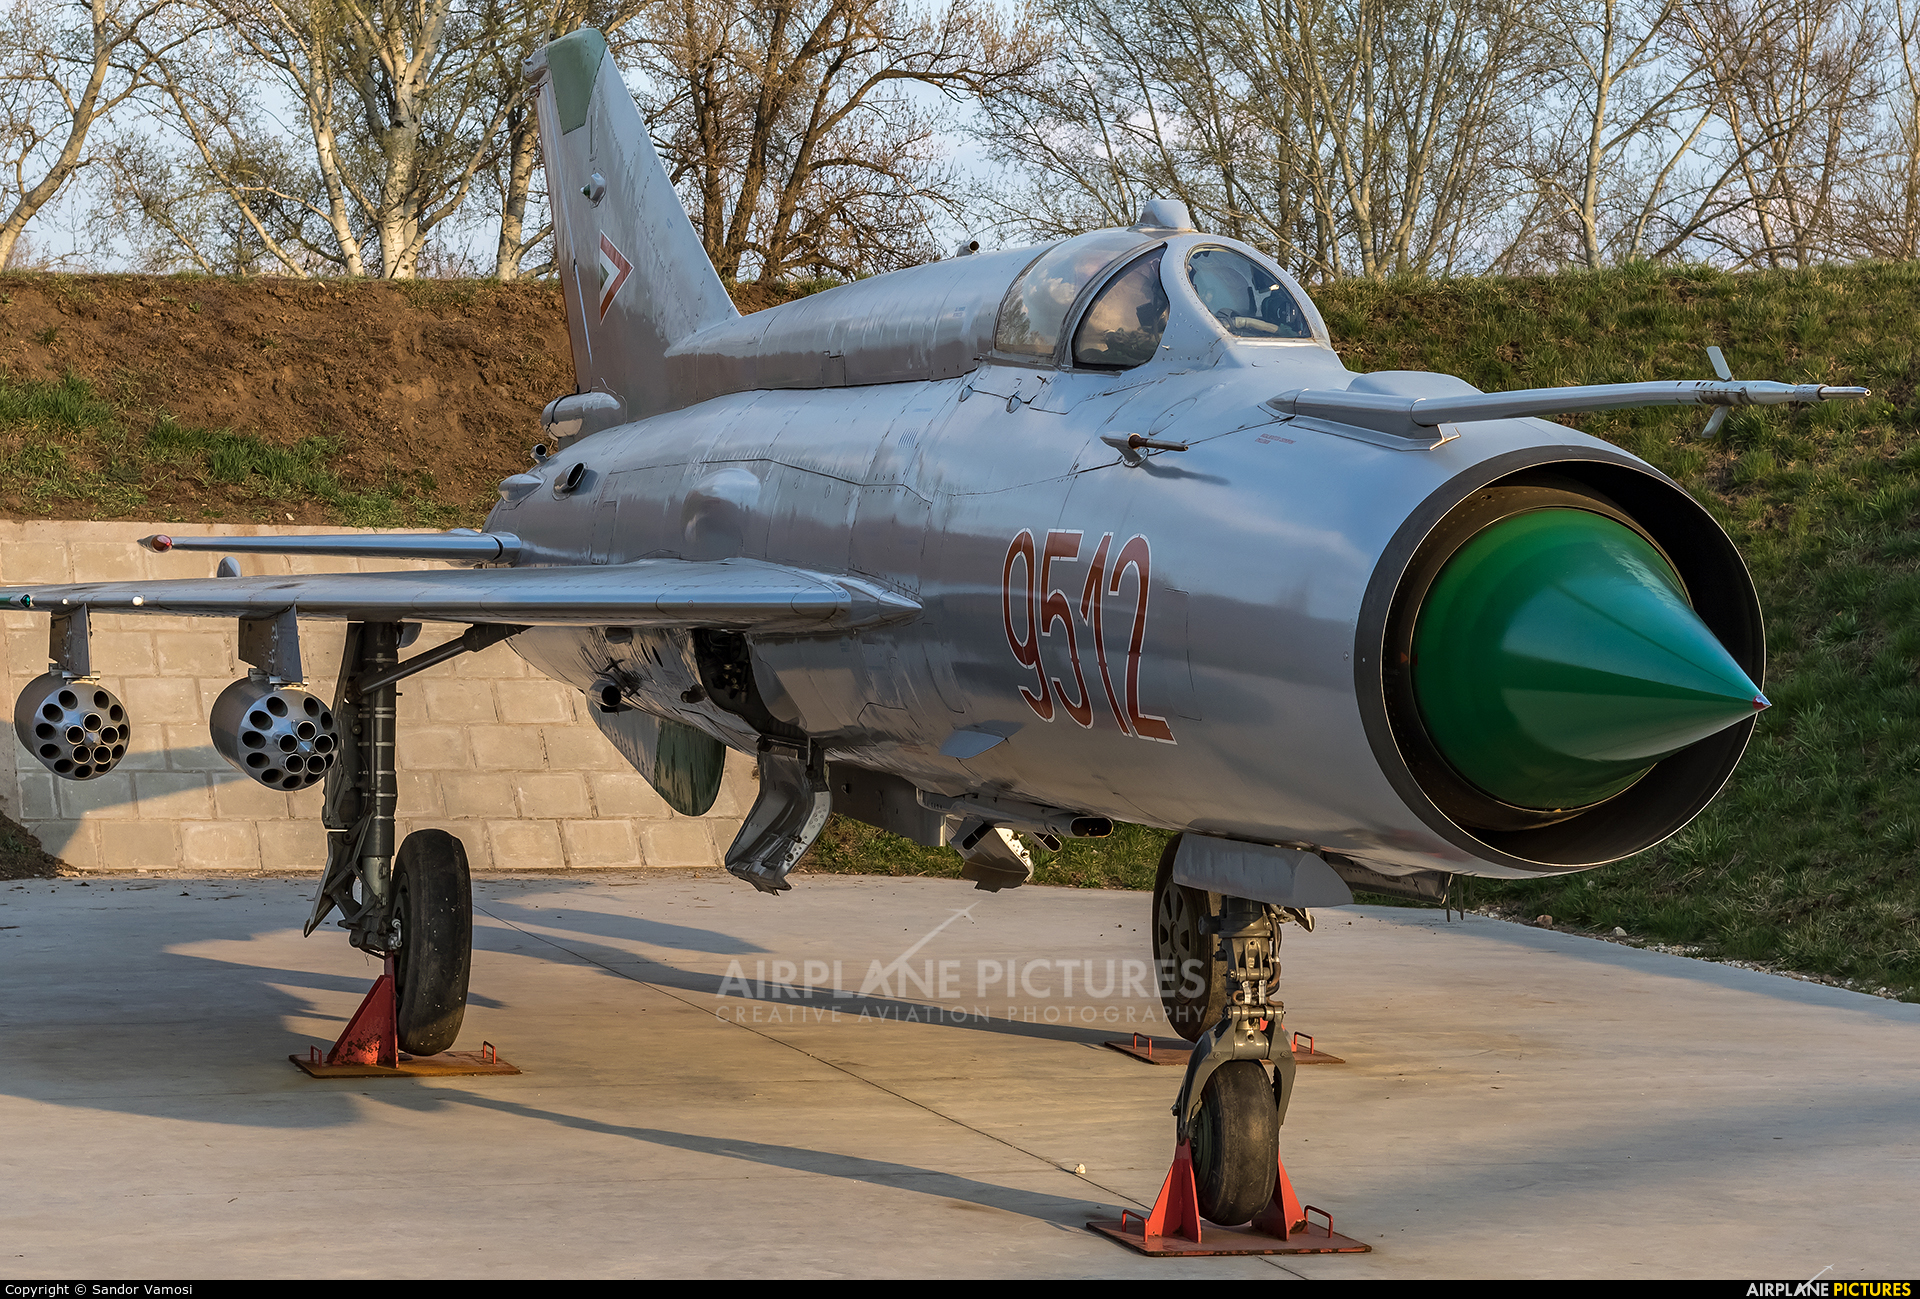 Hungary - Air Force 9512 aircraft at Off Airport - Hungary